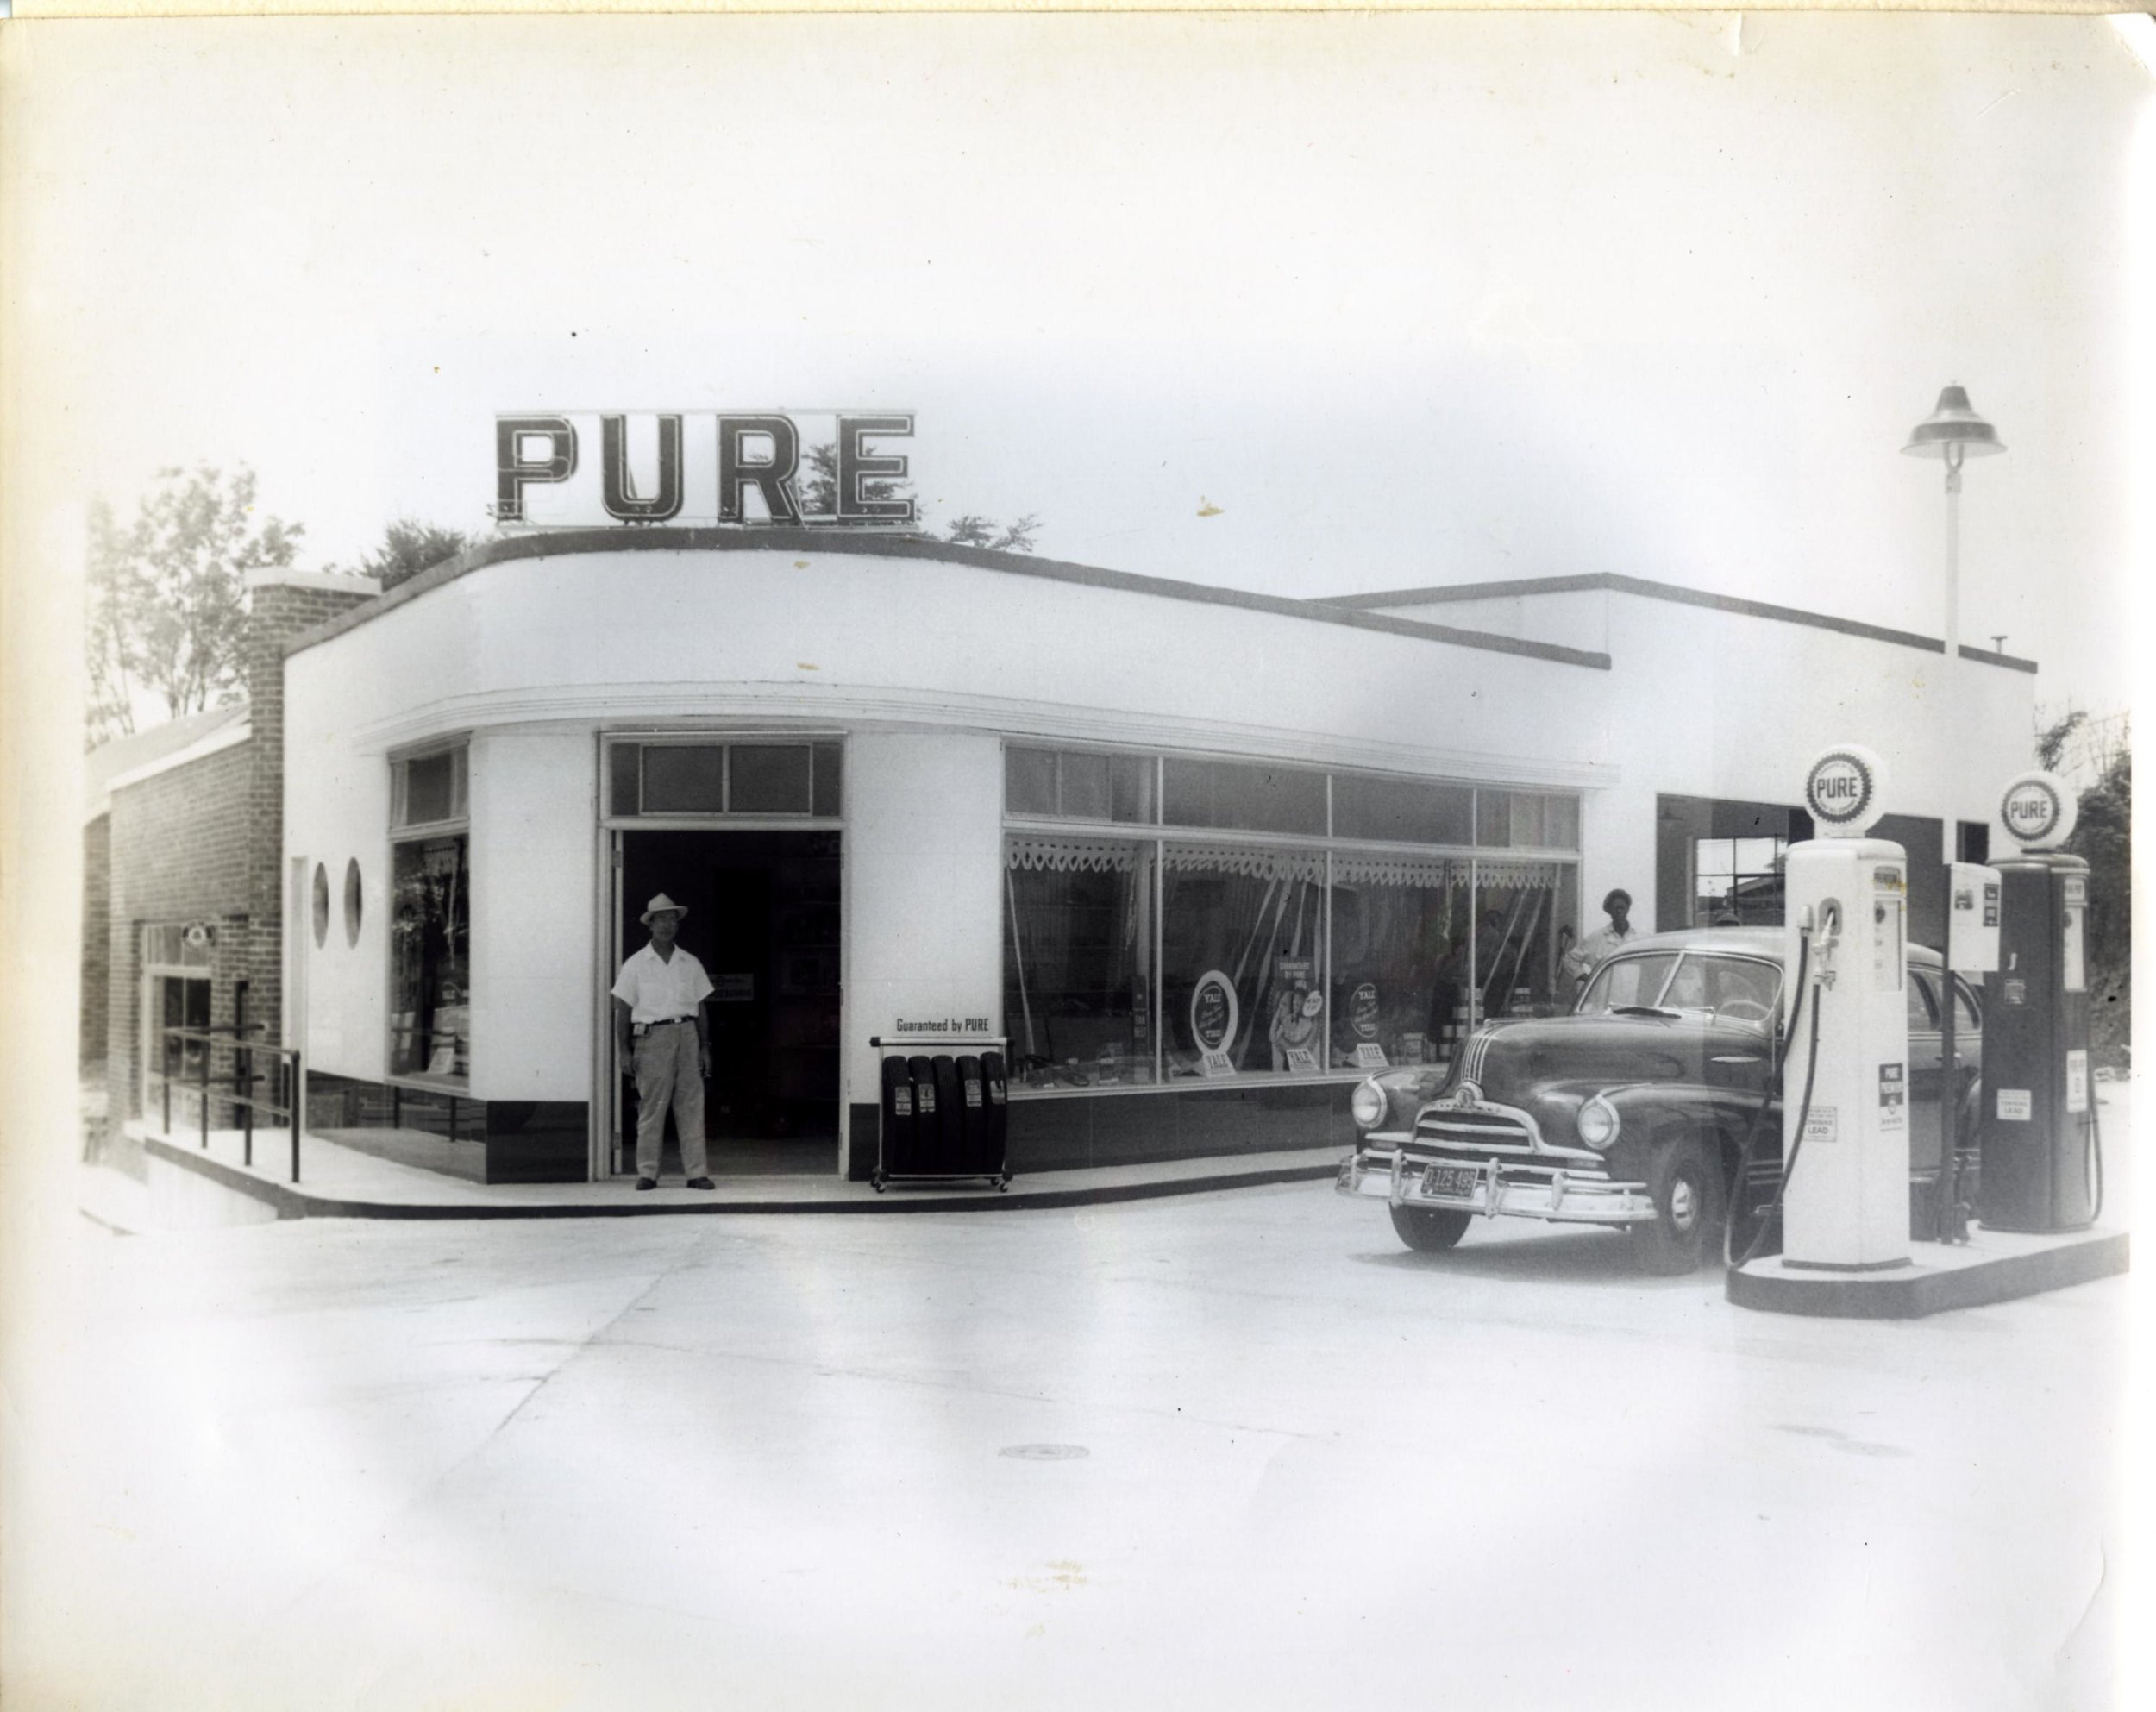 240 Main Street when it was Pure Gasoline Station